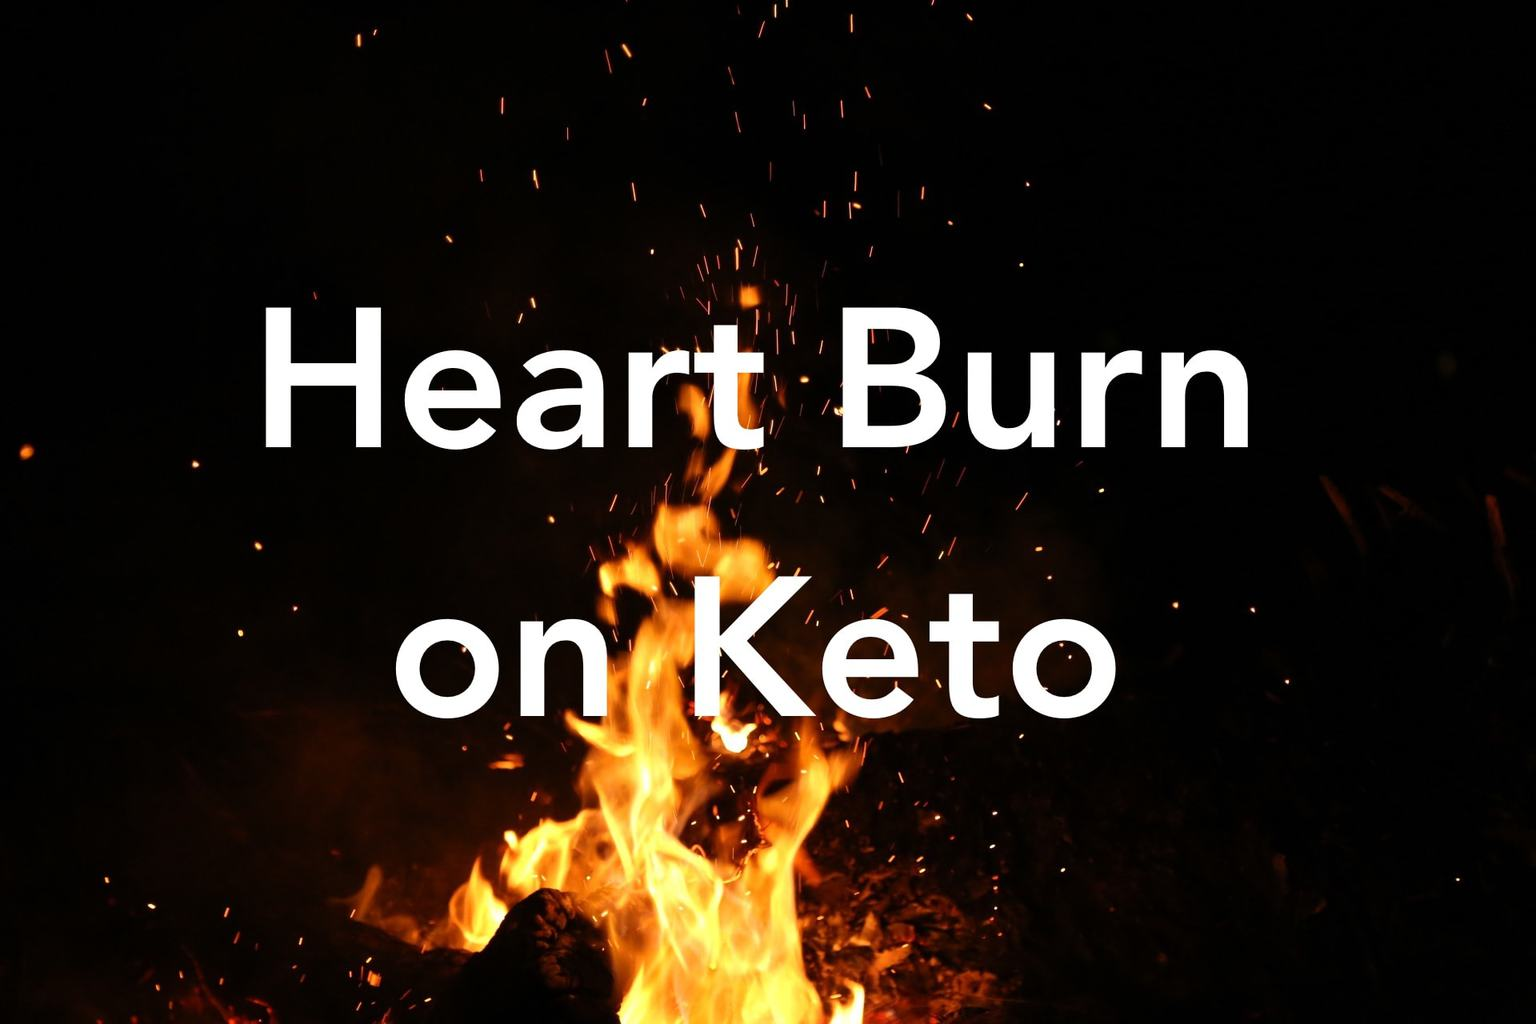 keto diet cause acid refluc